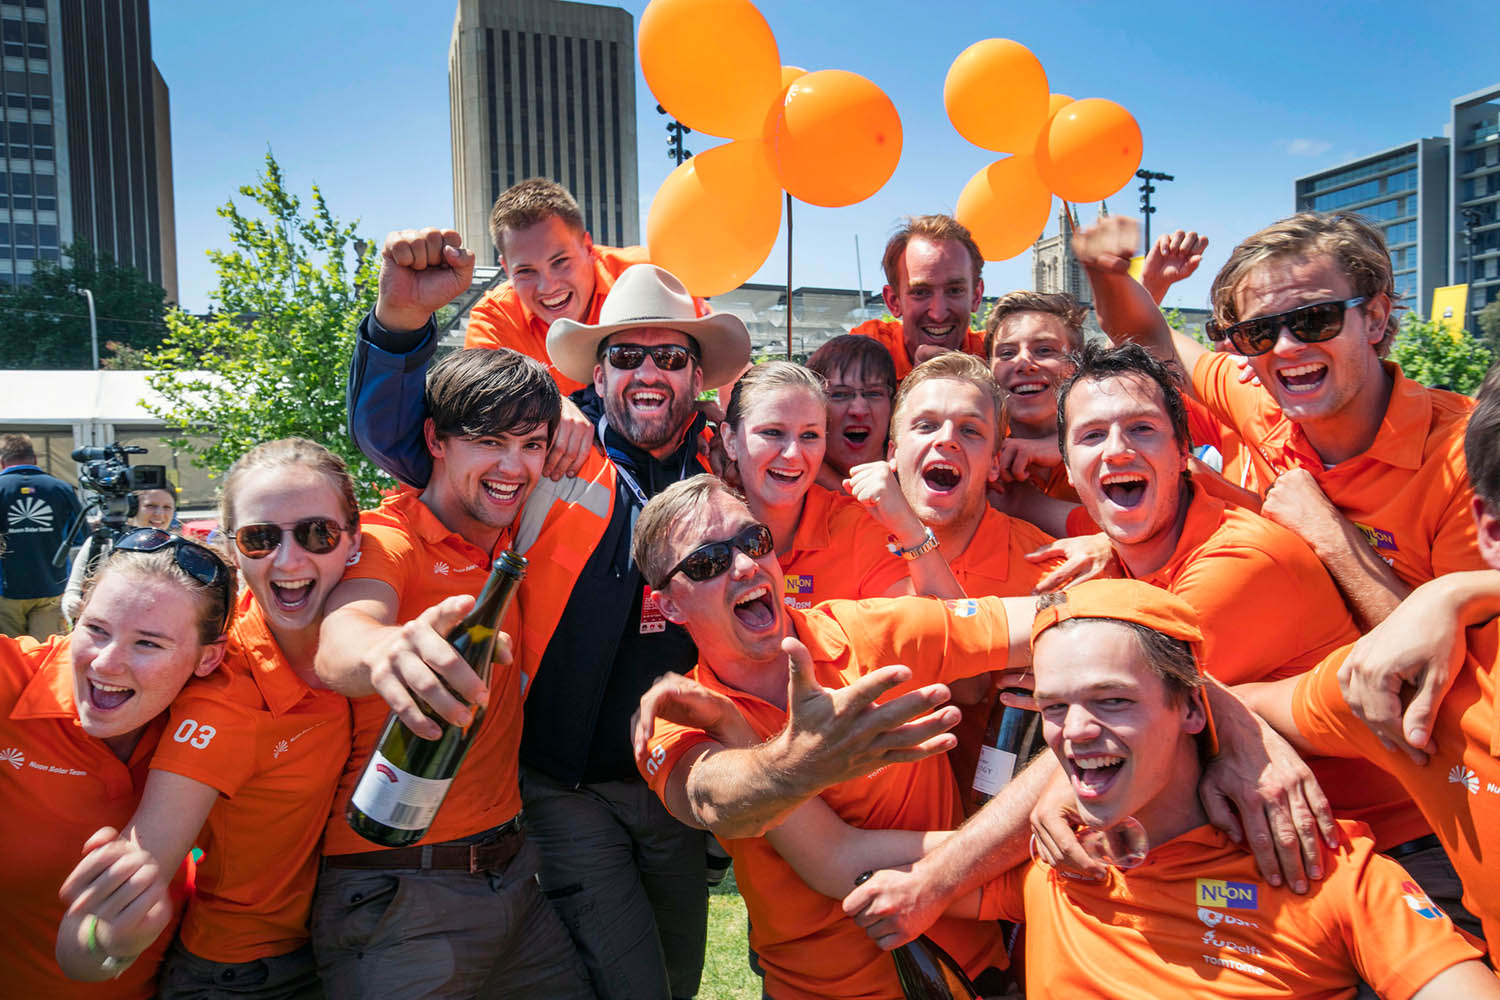 reap-support-nuon-solar-team-win-2015-3.jpg